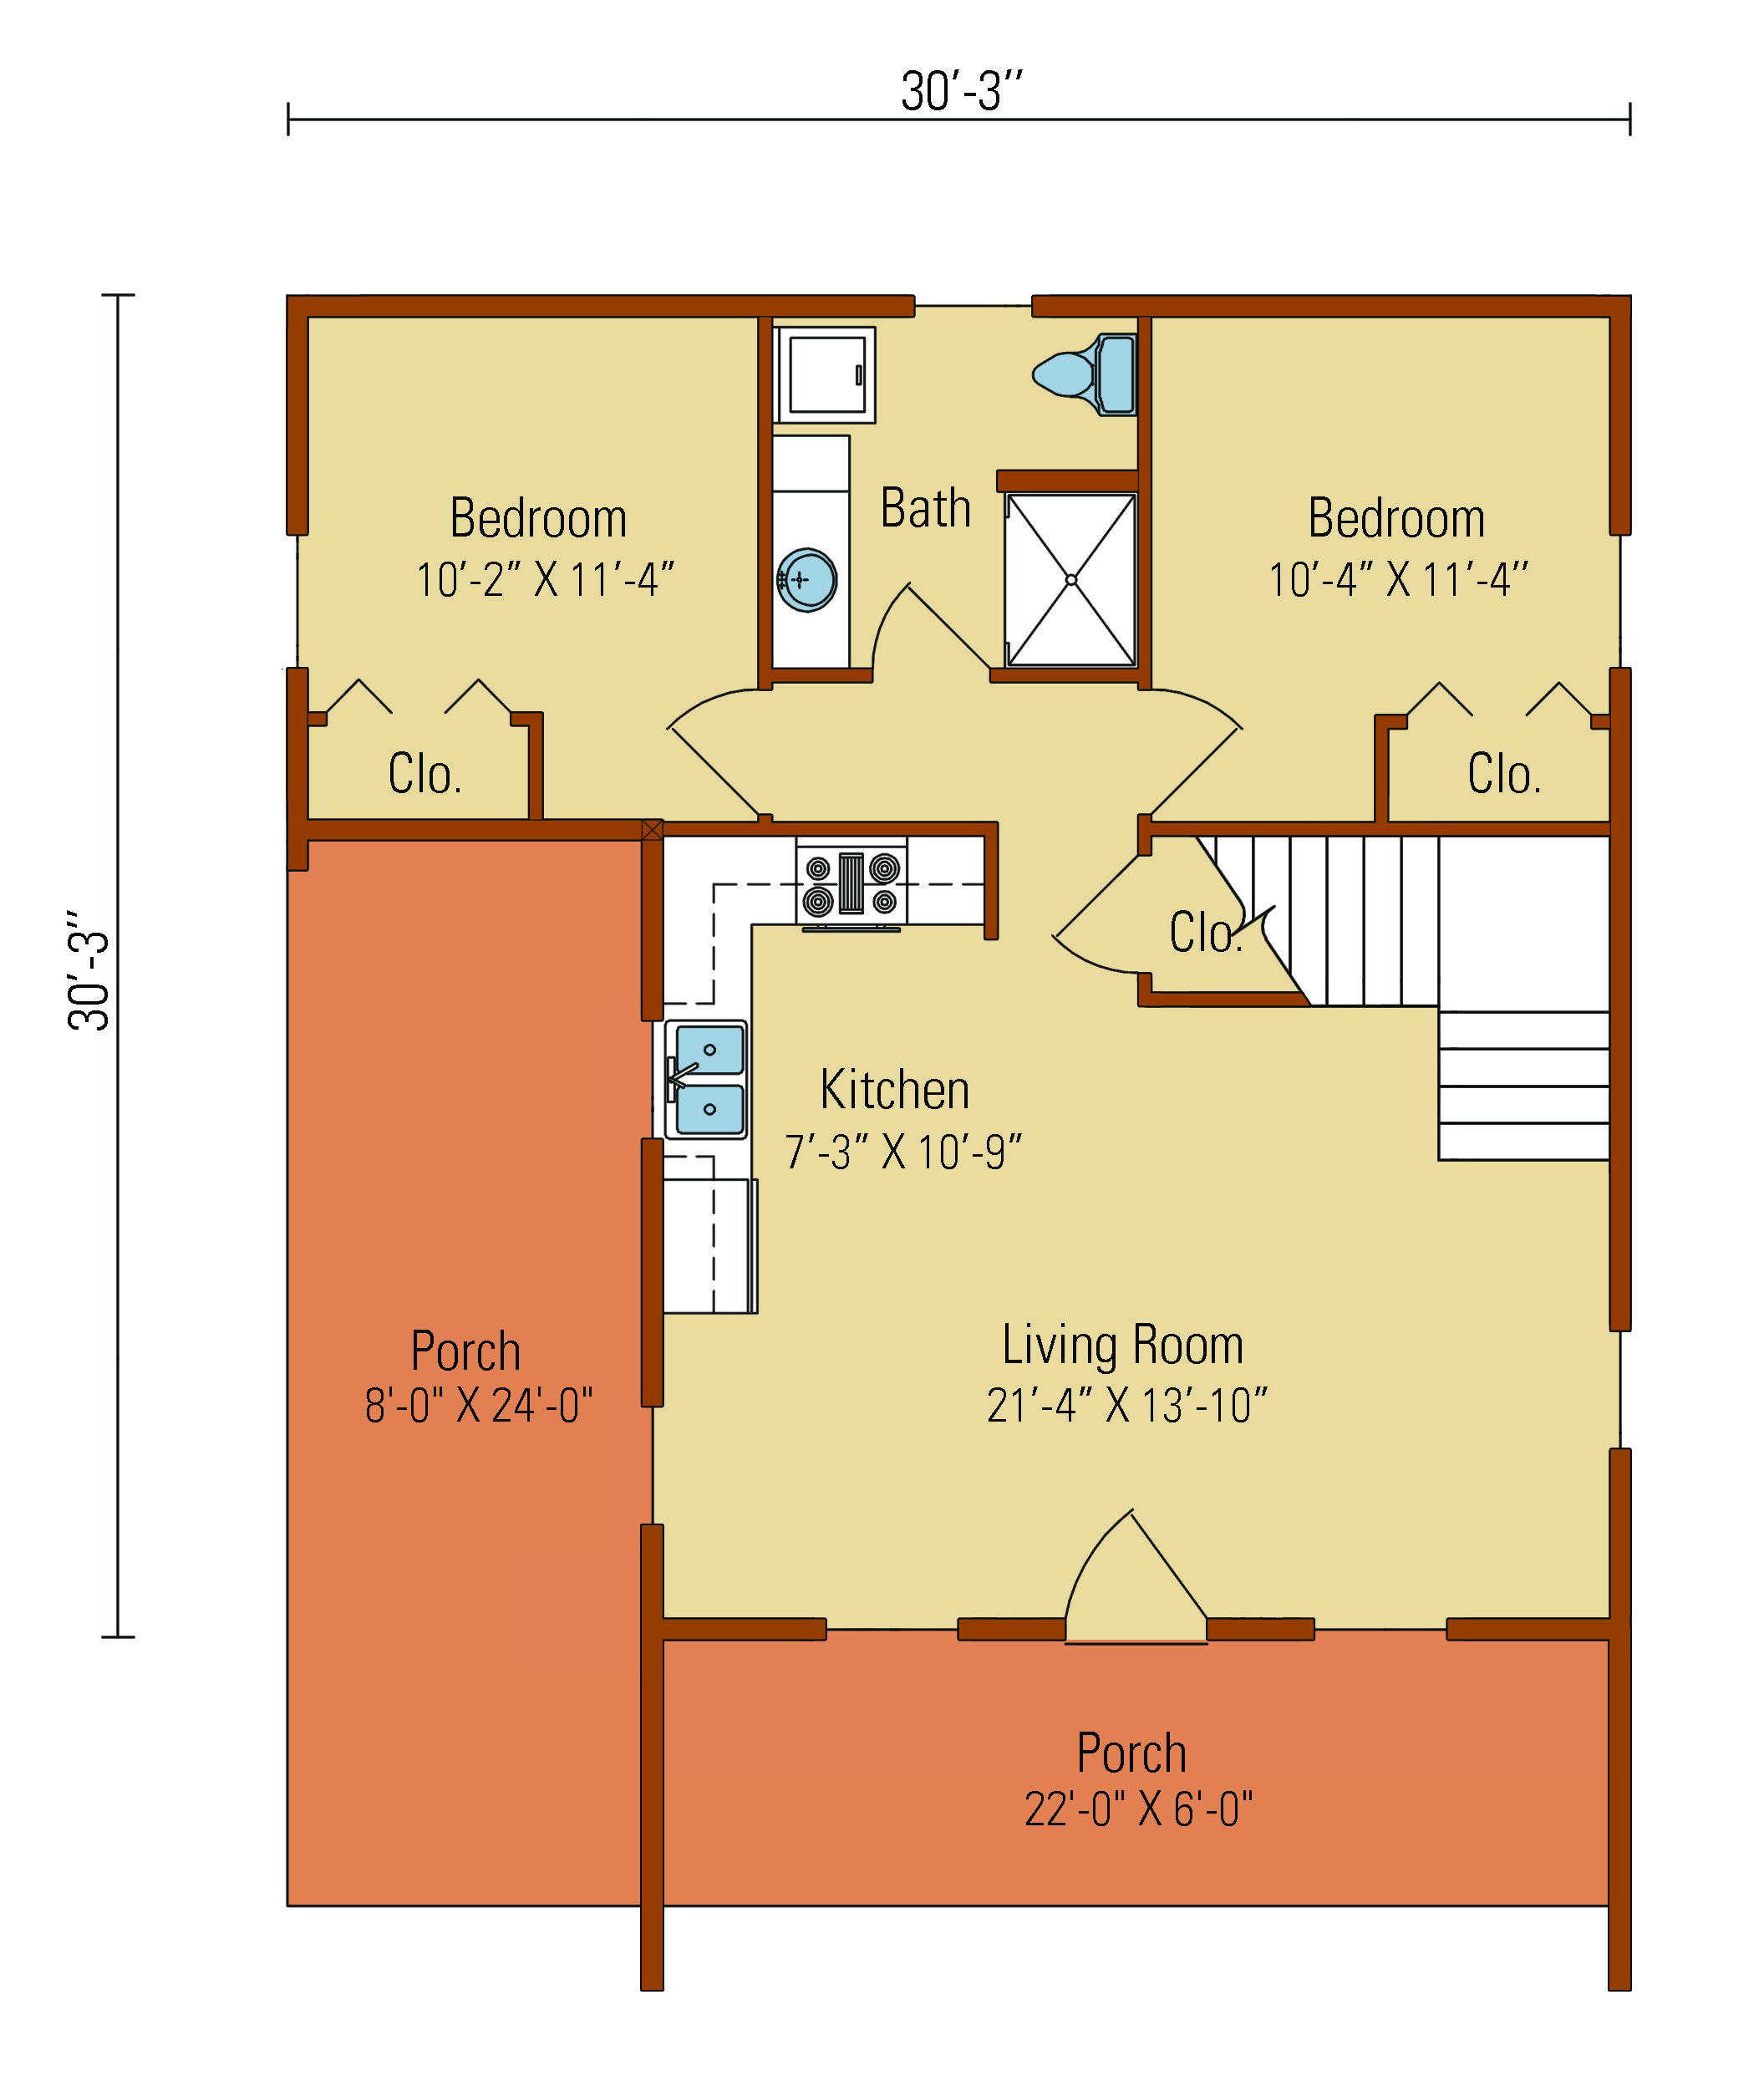 7 bedroom log cabin floor plans for 5 bedroom log home plans